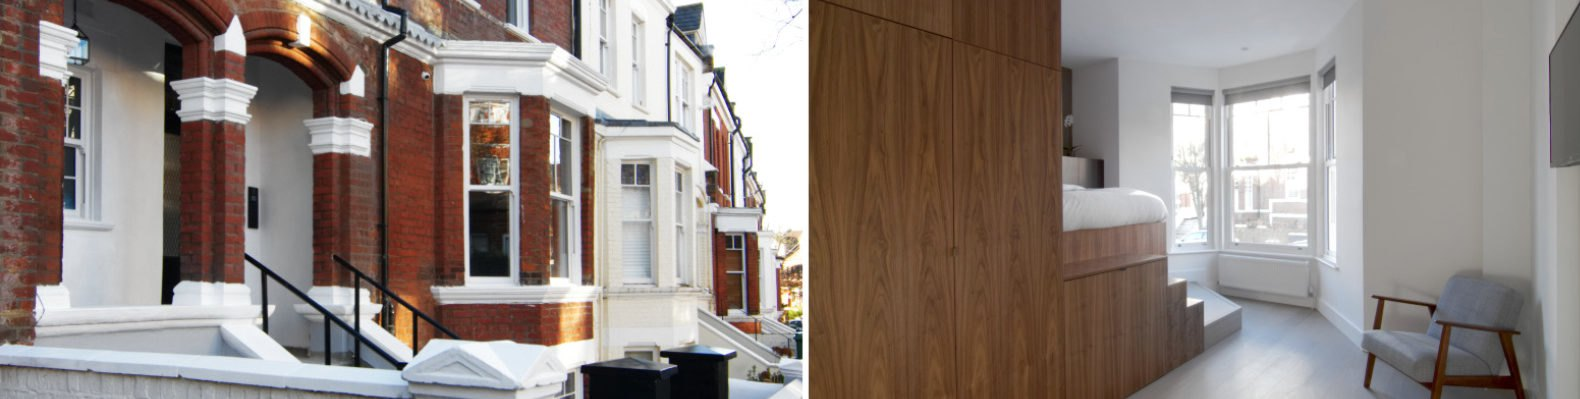 image of brick townhouse exterior on the left and wooden bed and kitchen unit on the right